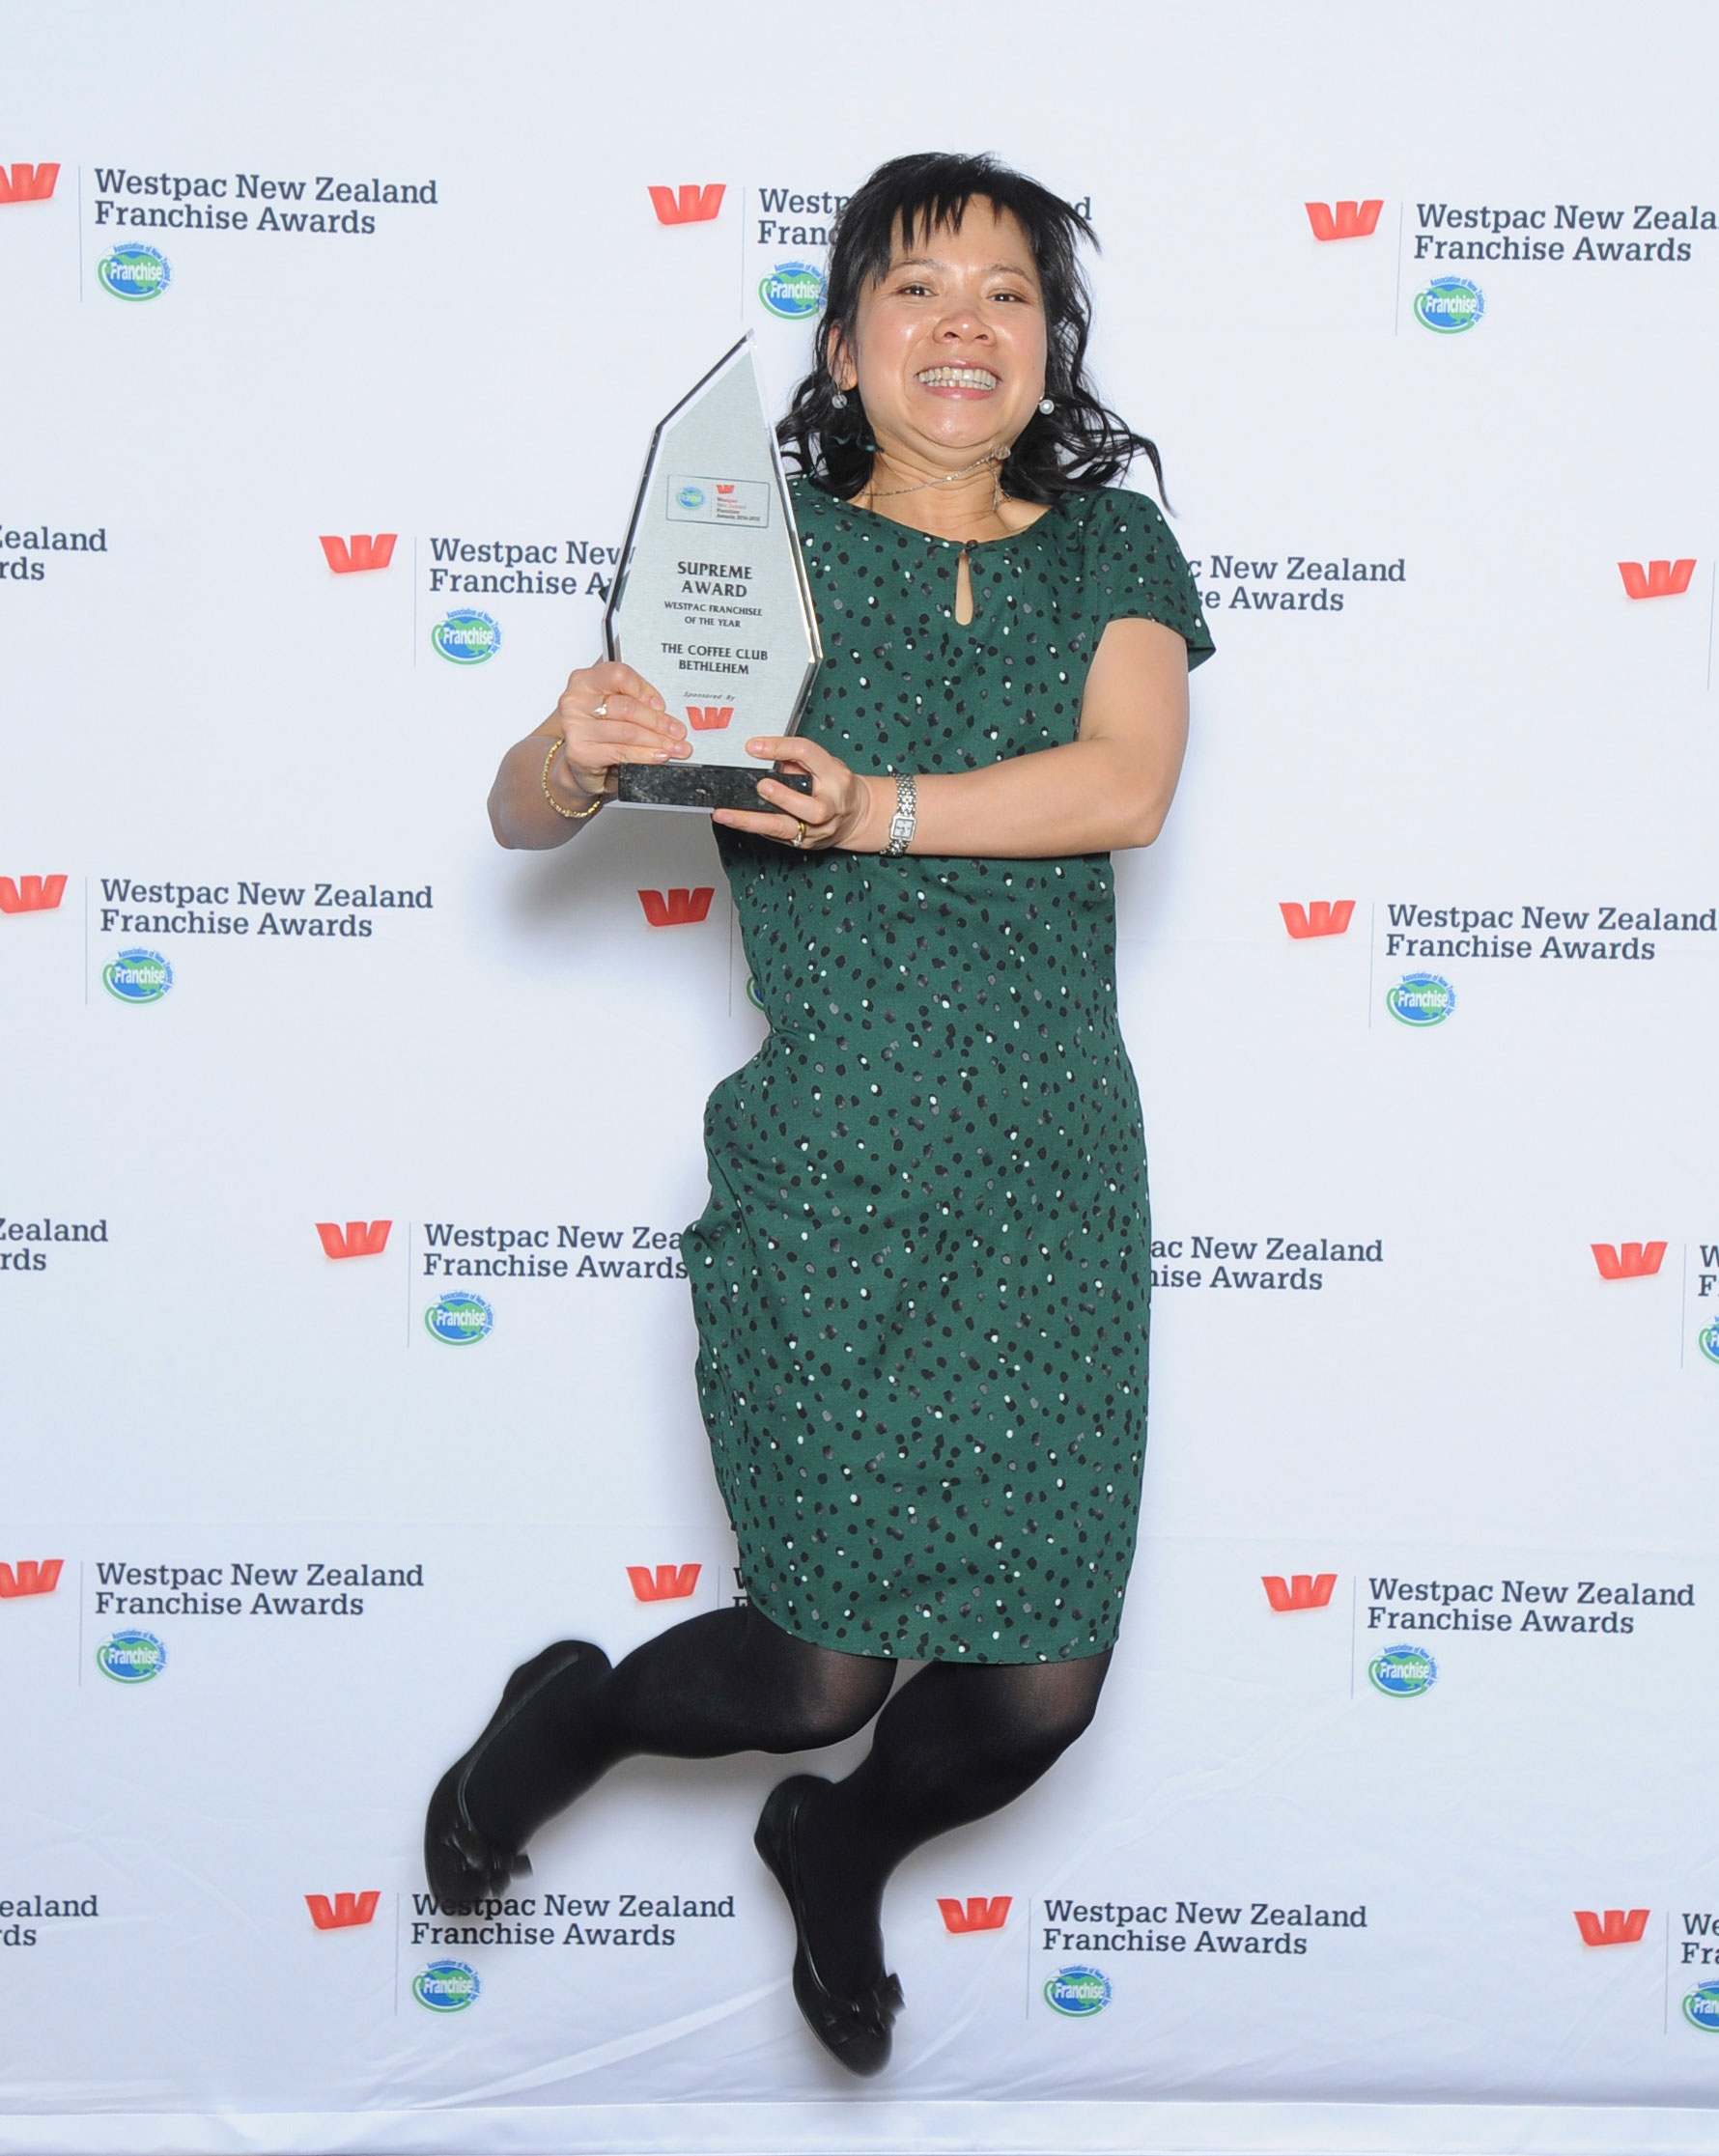 Jumping for joy! Triple Supreme Award-winner Ivy Joe with her favourite trophy